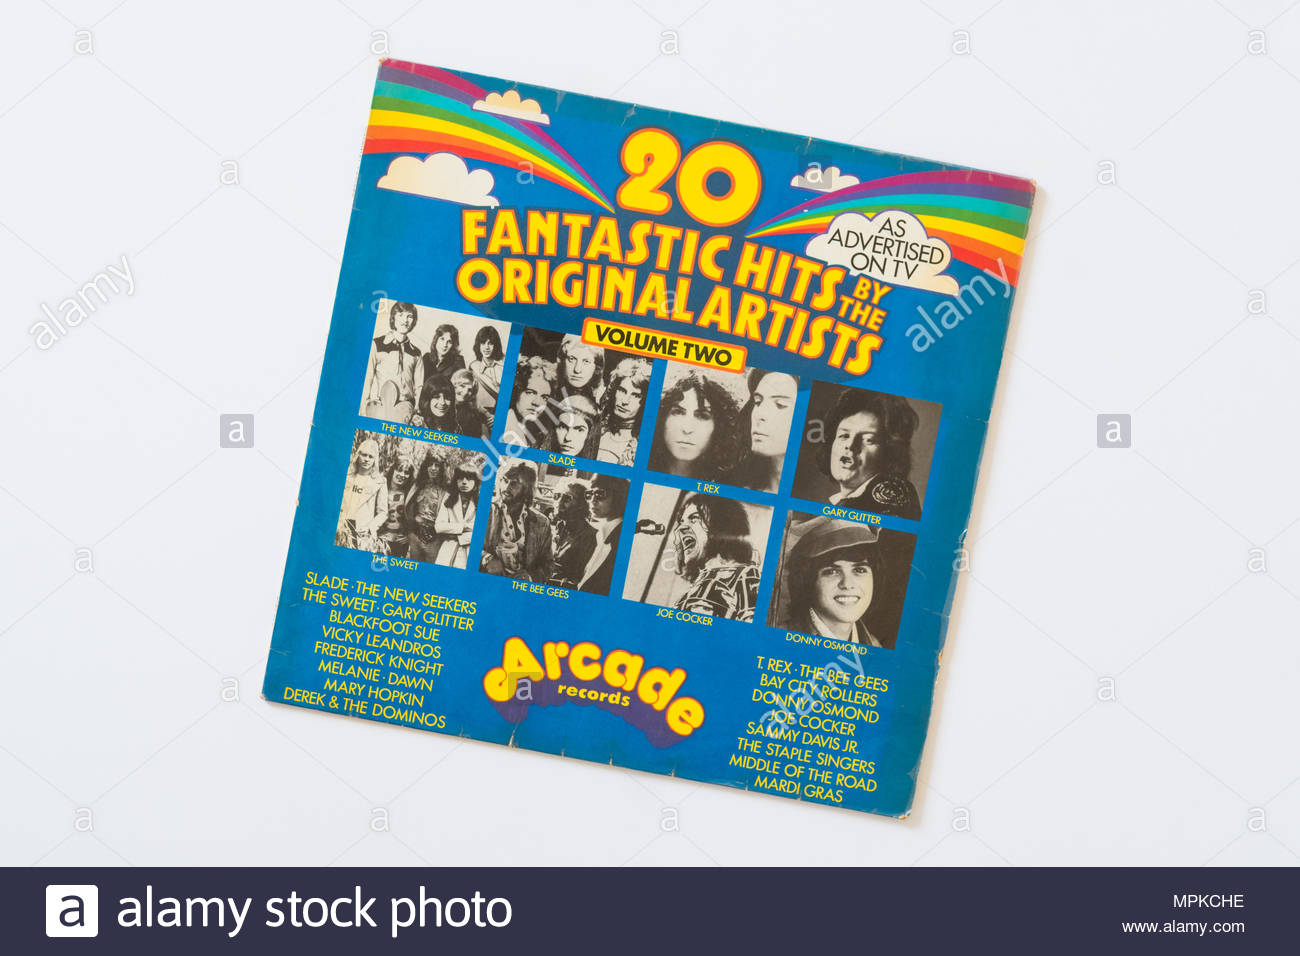 70s Music Stock Photos & 70s Music Stock Images - Alamy